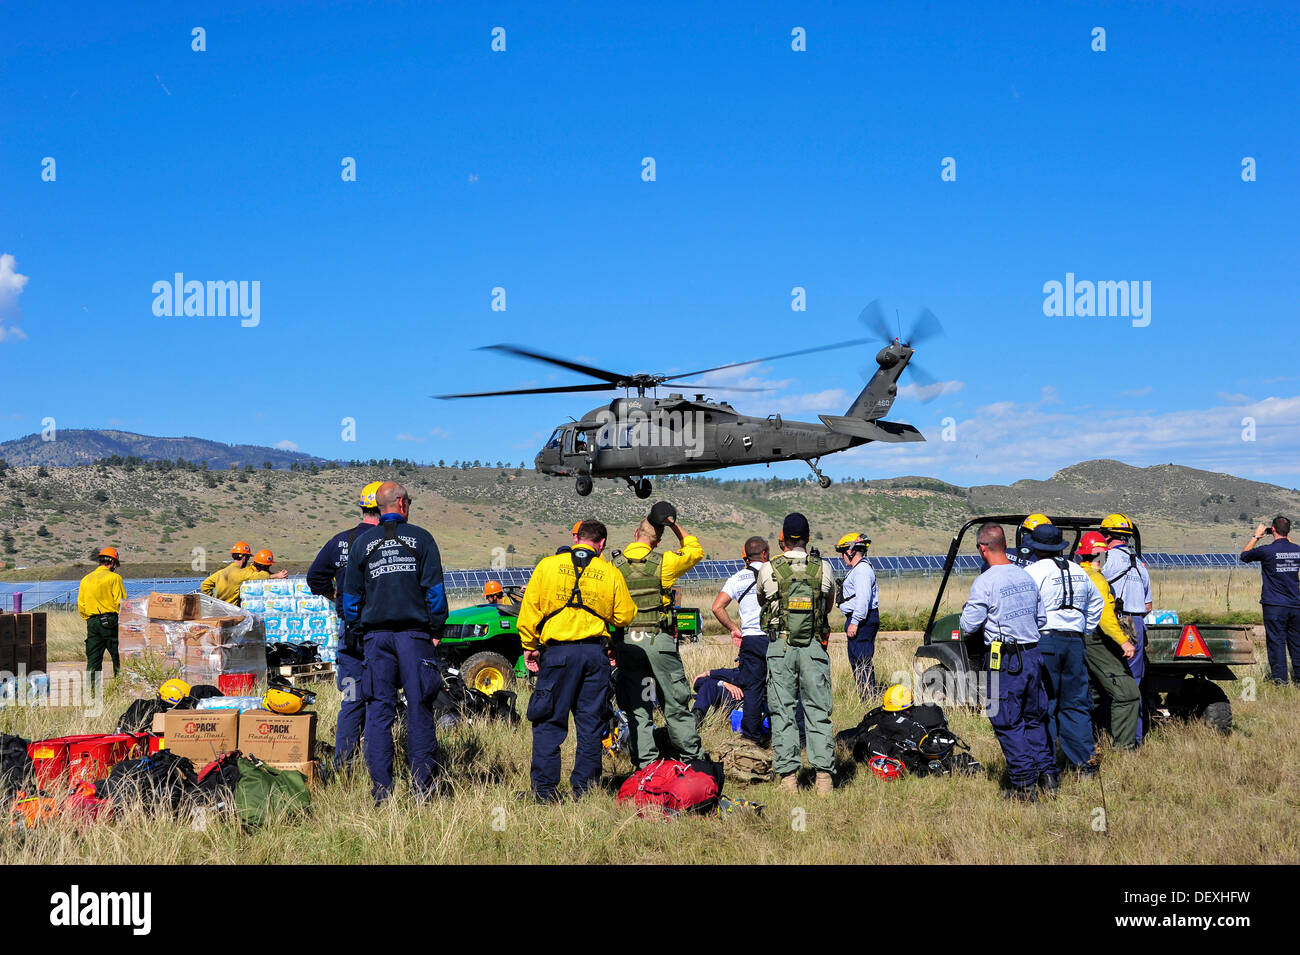 With much needed clear skies in the forecast, Colorado and national civil search and rescue teams from around the country watch - Stock Image